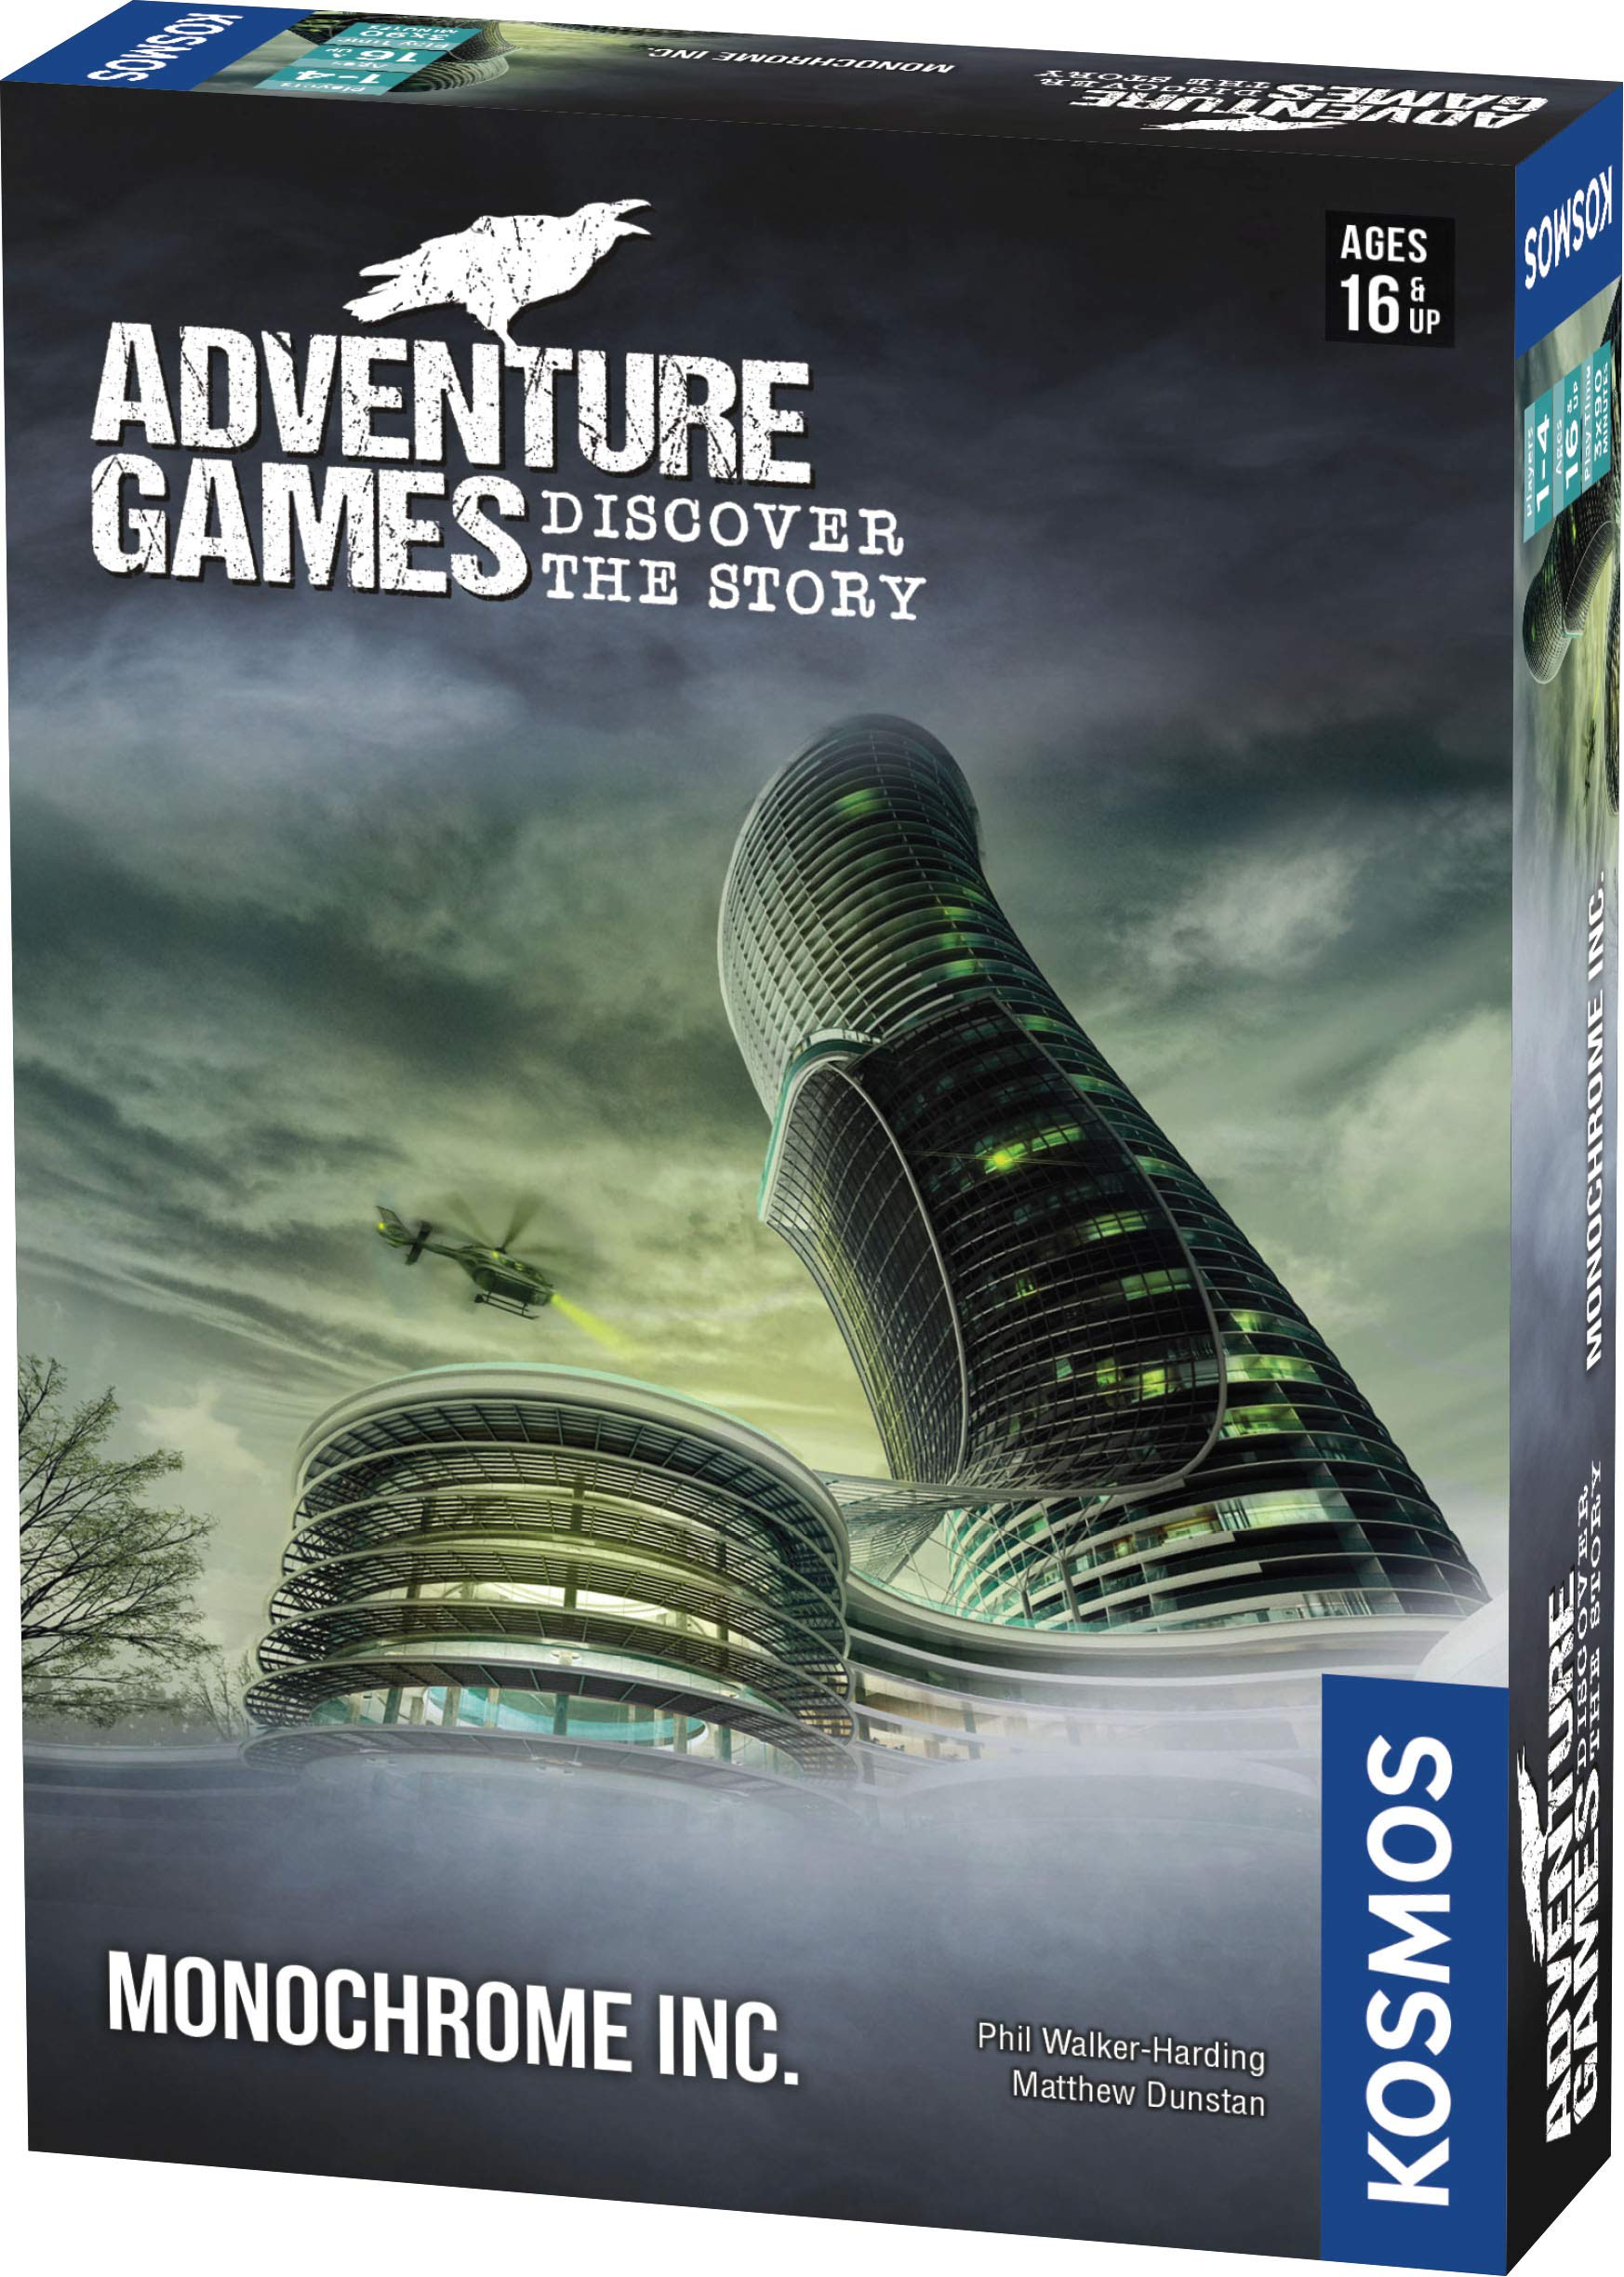 Adventure Games: Monochrome, Inc. - A Kosmos Game from Thames & Kosmos | Collaborative, Replayable Storytelling Gaming Experience for 1 to 4 Players Ages 16+